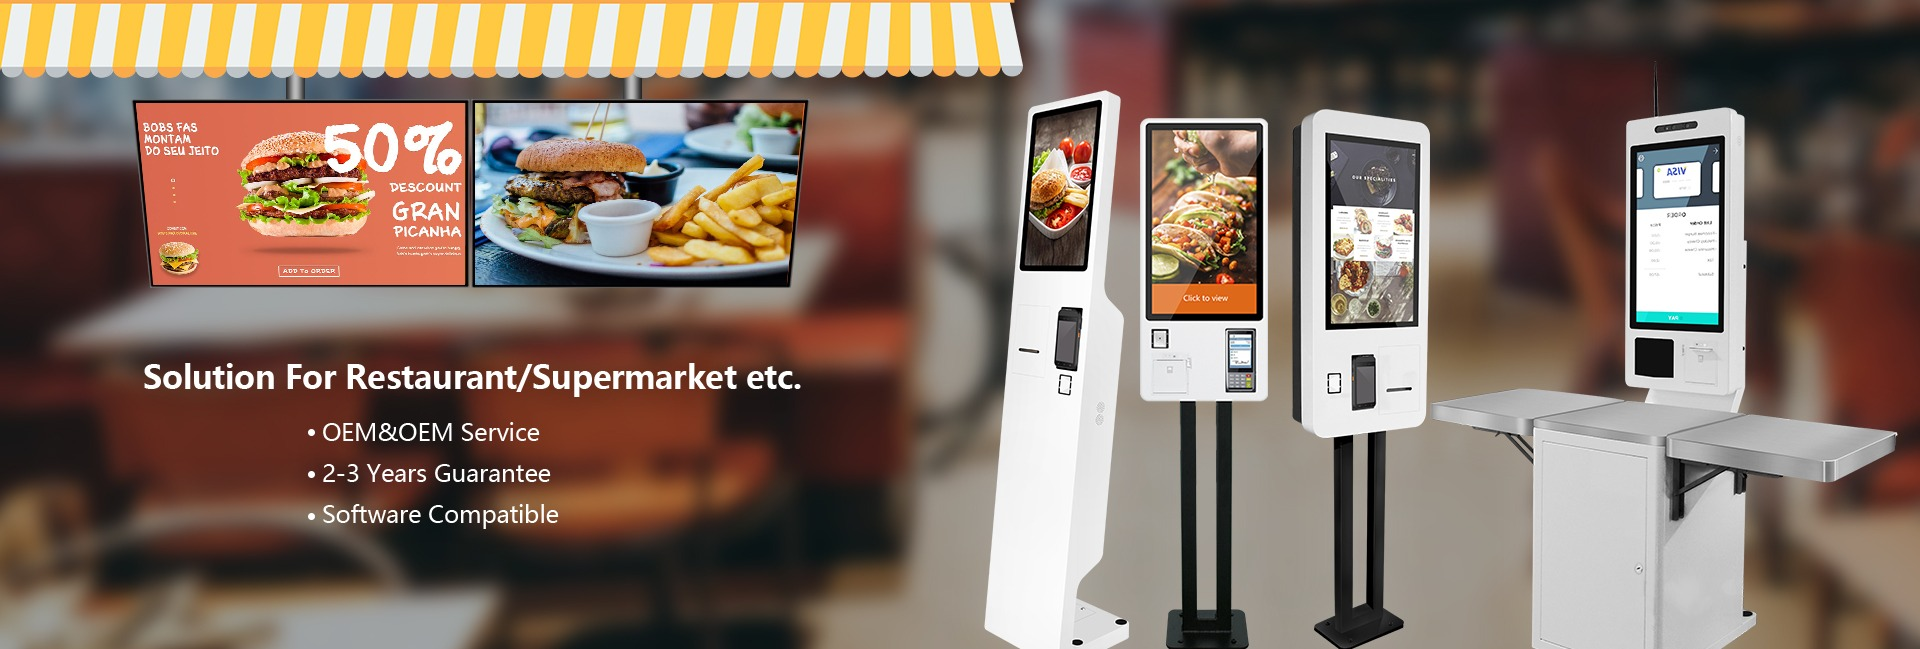 epos packages Digital Screens and self order kiosk